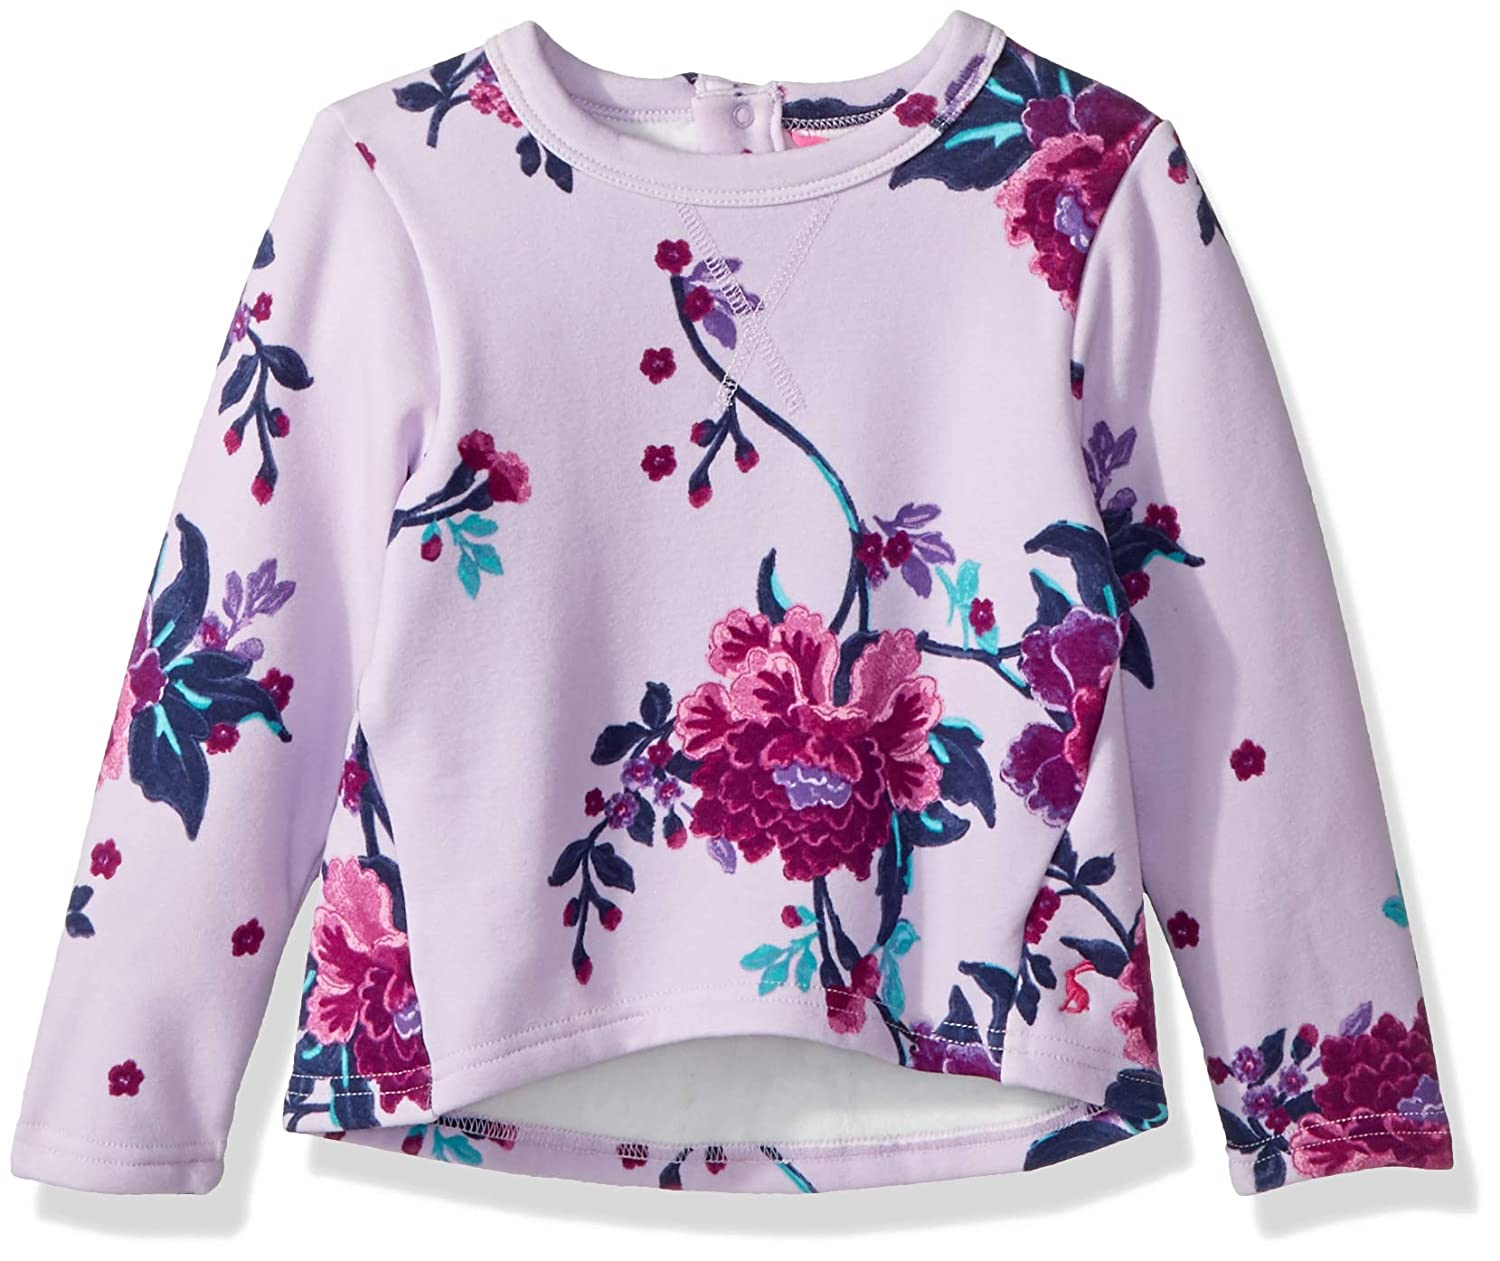 Joules Faux Fur Backed Sweater - Lilac Chinoise Floral